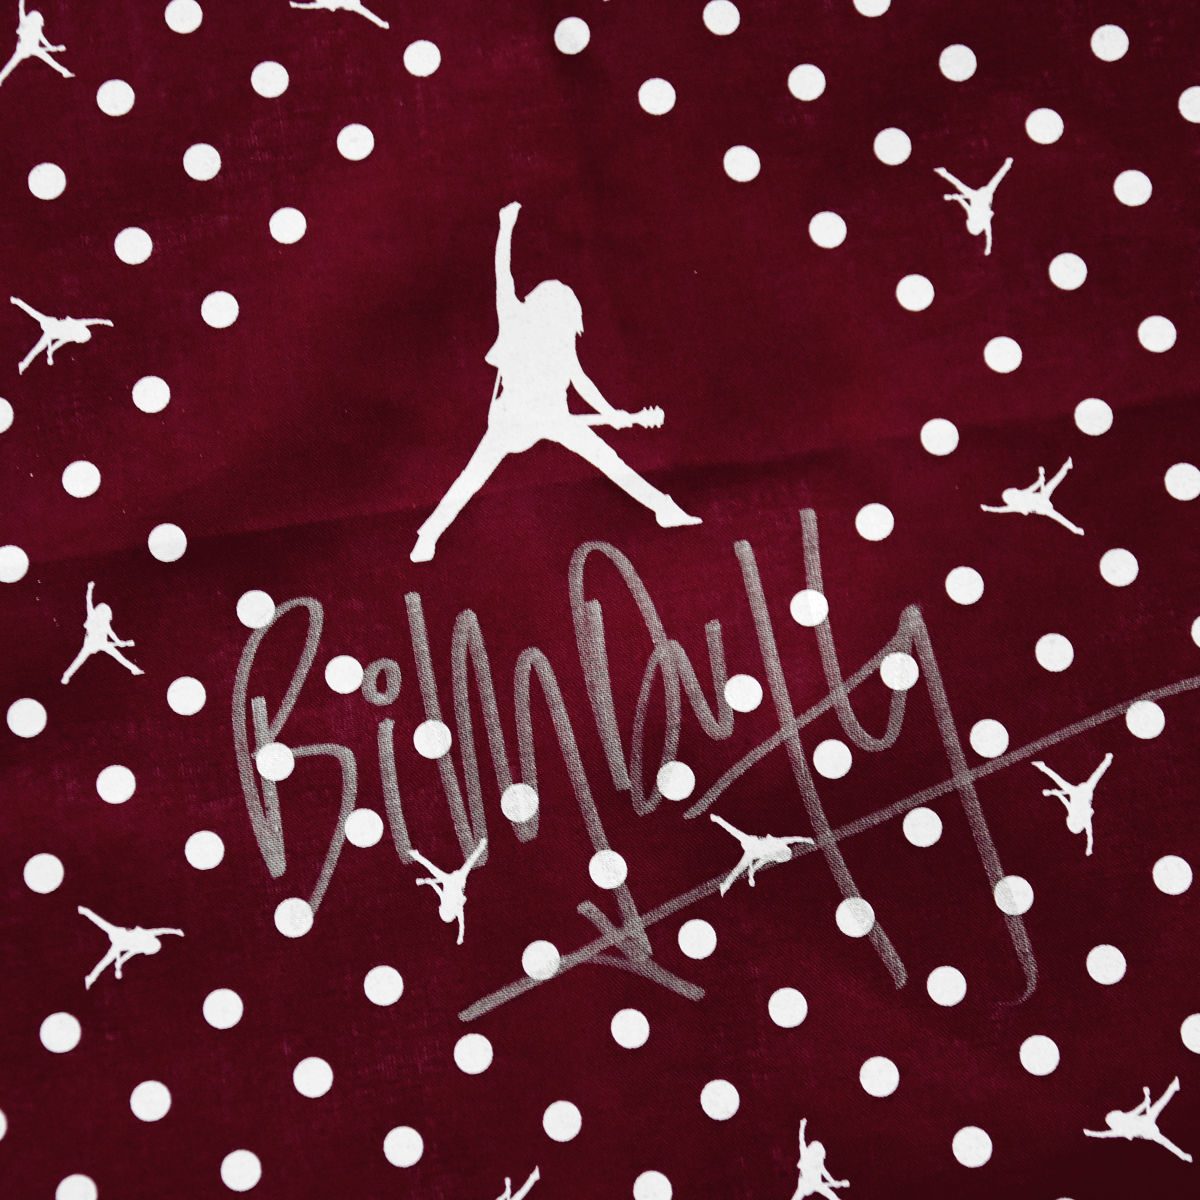 Signed BD Logo Bandana - Burgundy/White - product images  of